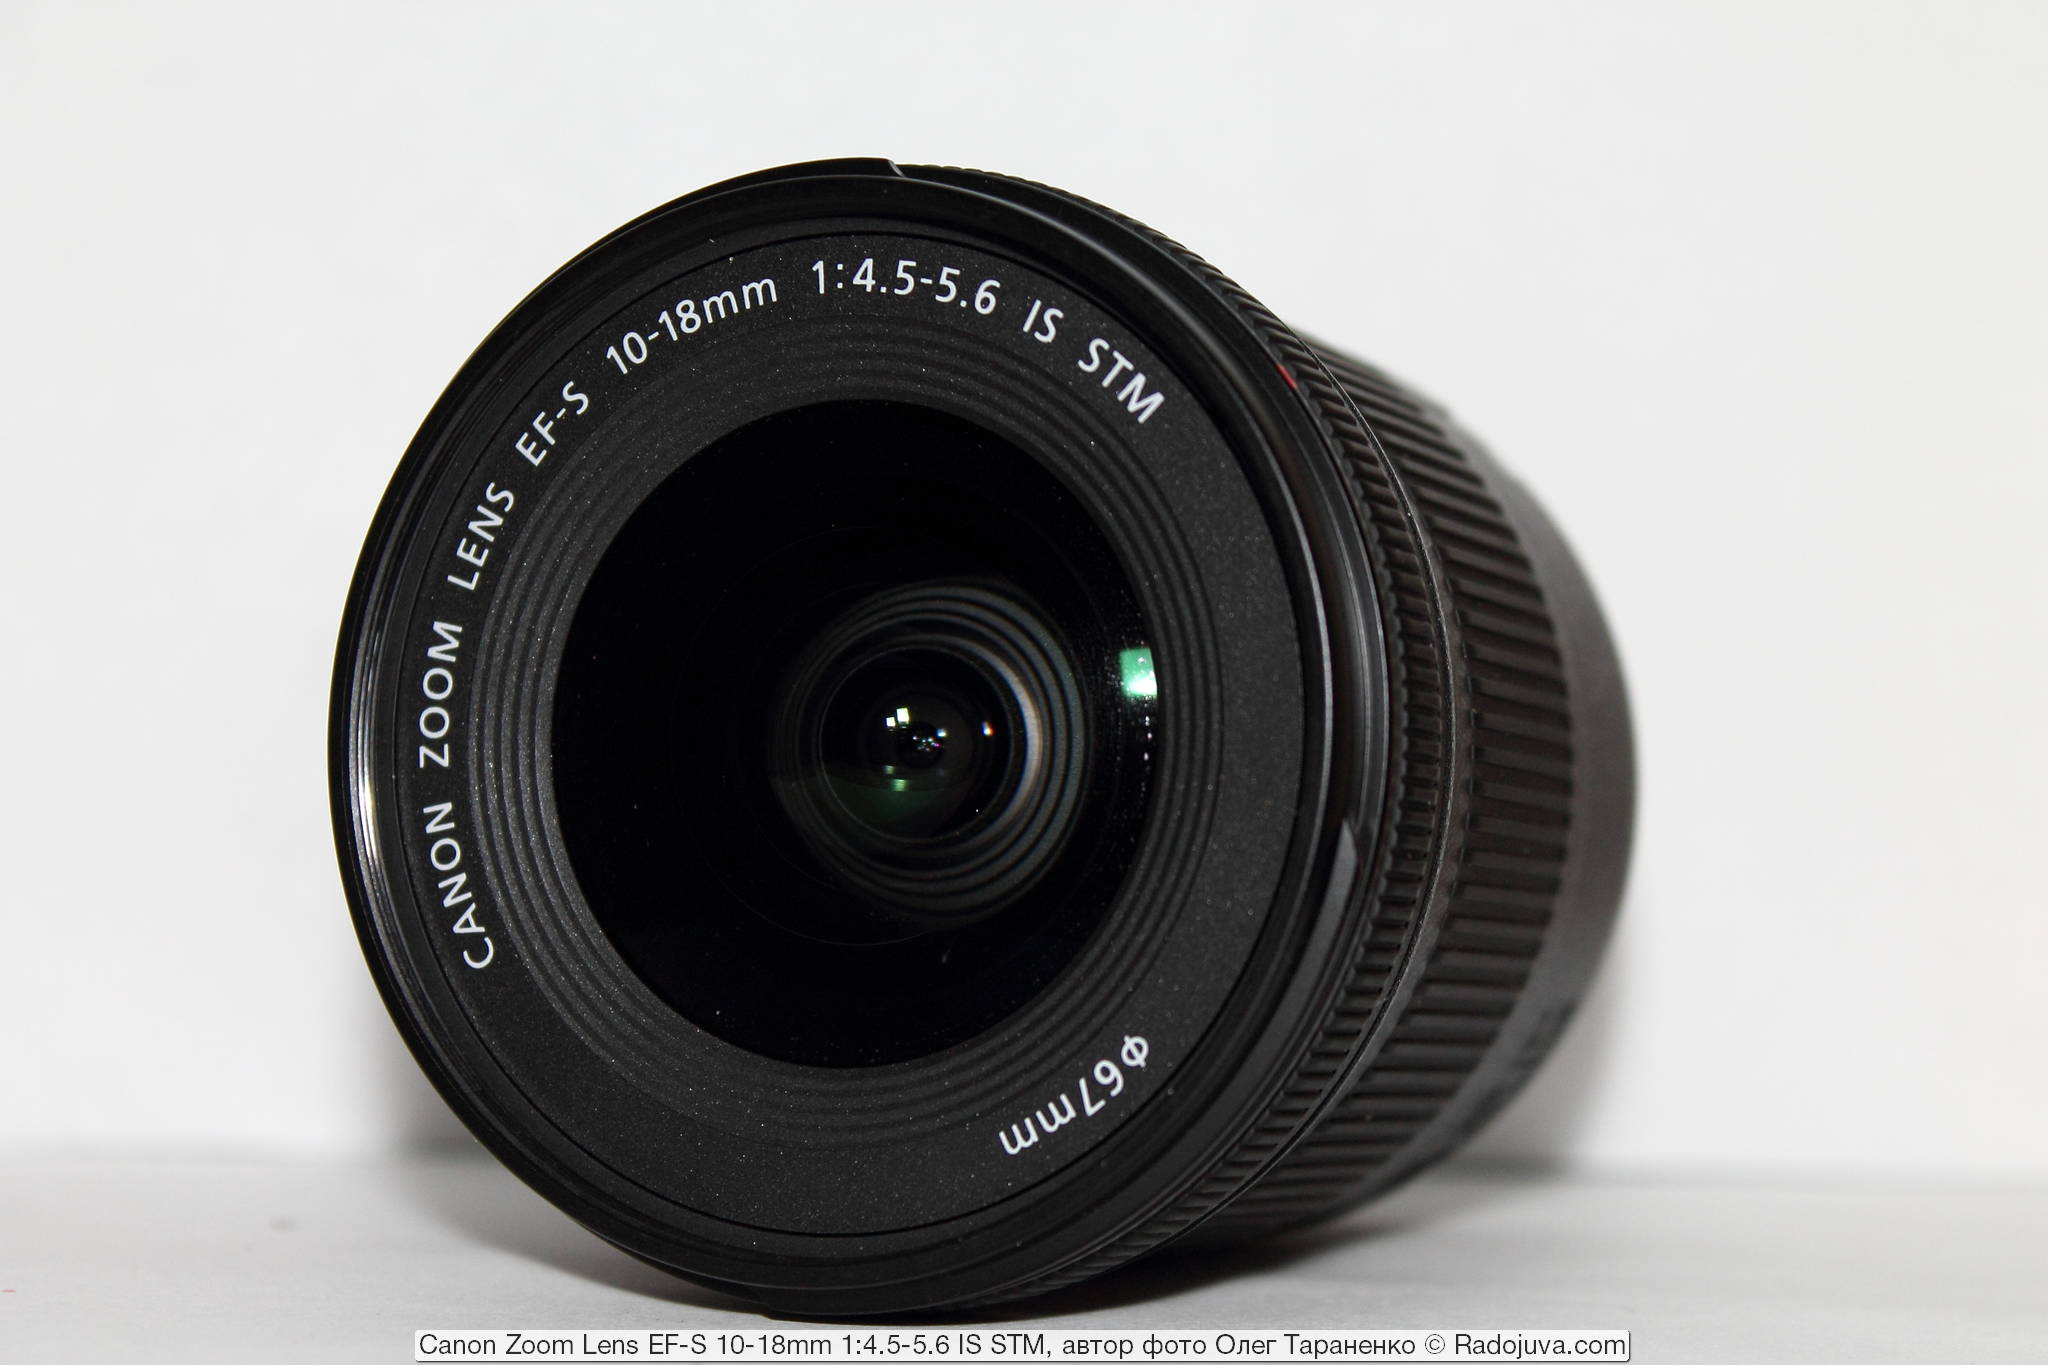 Canon Zoom Lens EF-S 10-18mm 1:4.5-5.6 IS STM